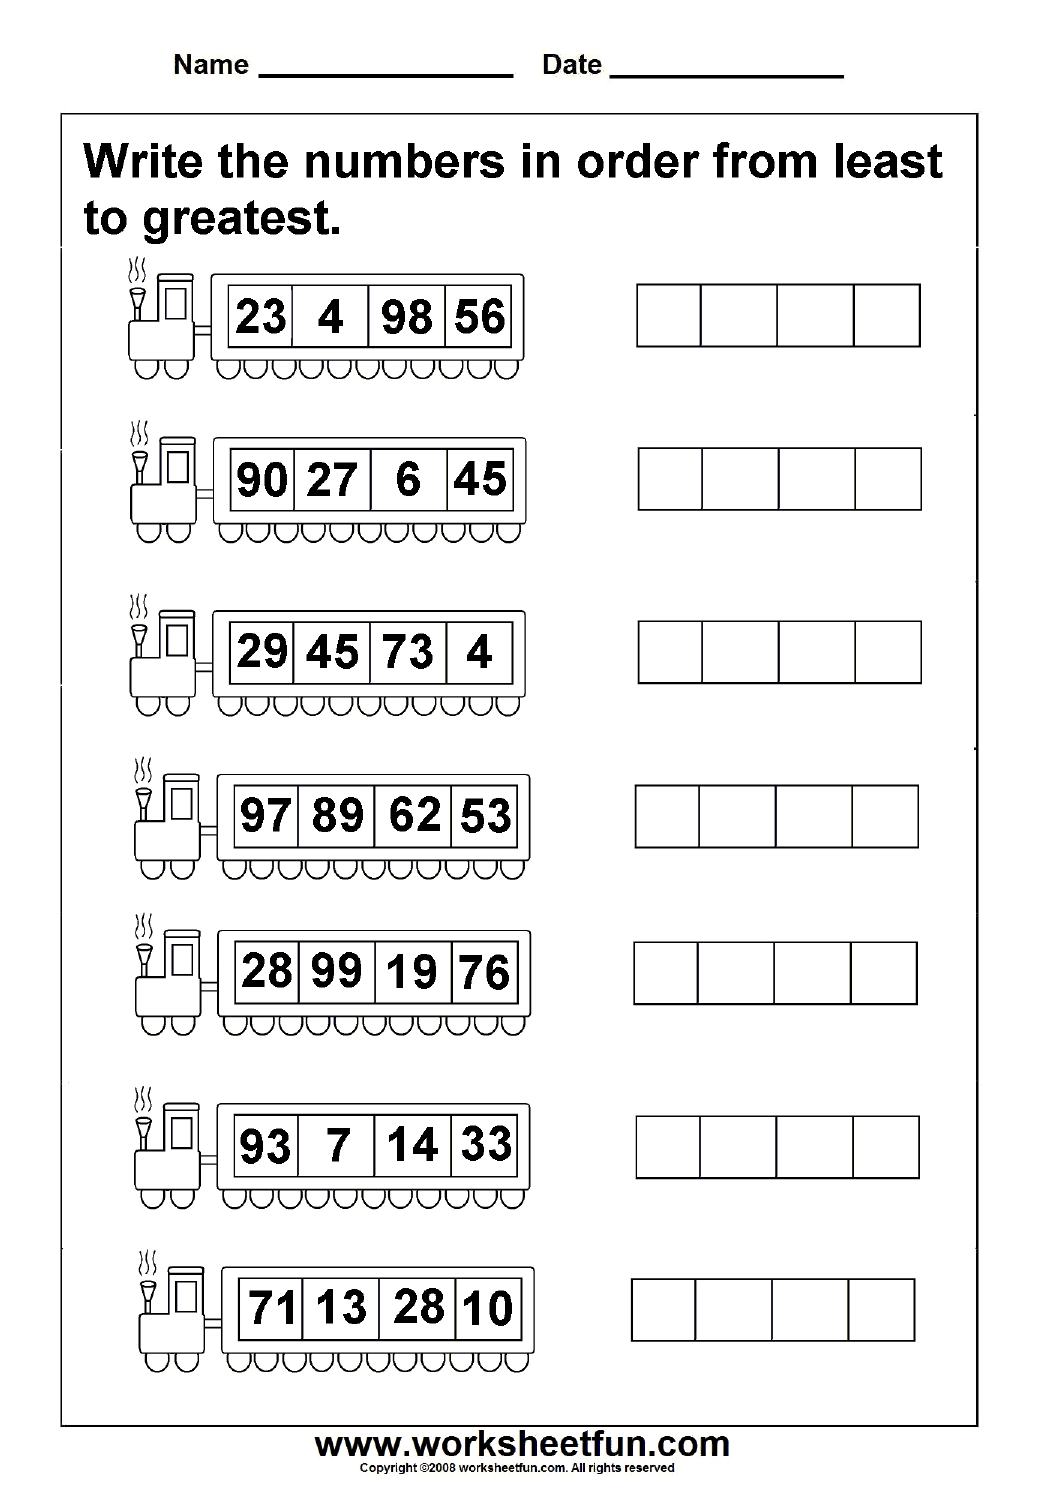 Worksheet Ordering Numbers